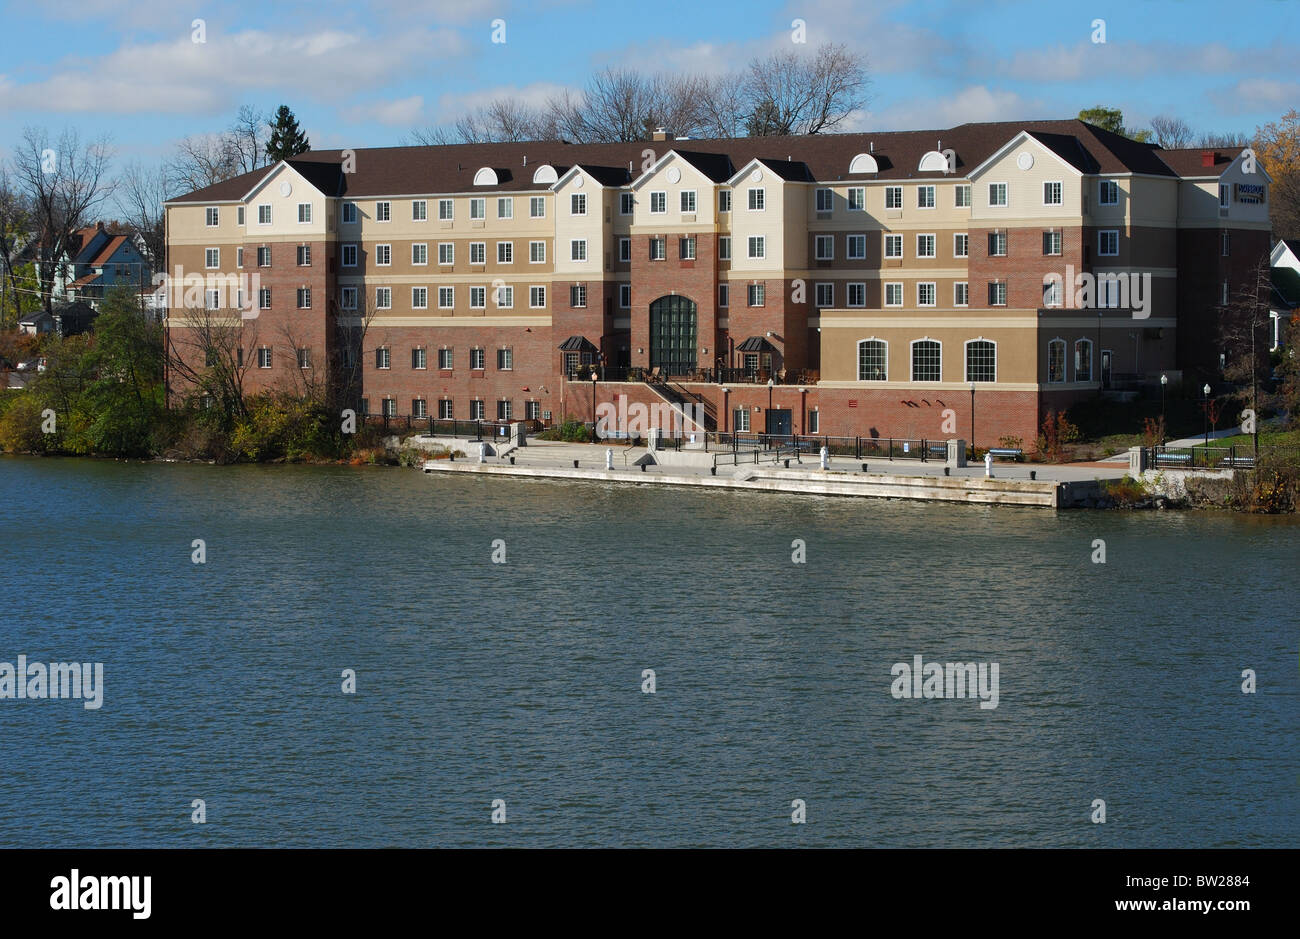 Hotel on the Genesee River in Rochester, New York - Stock Image